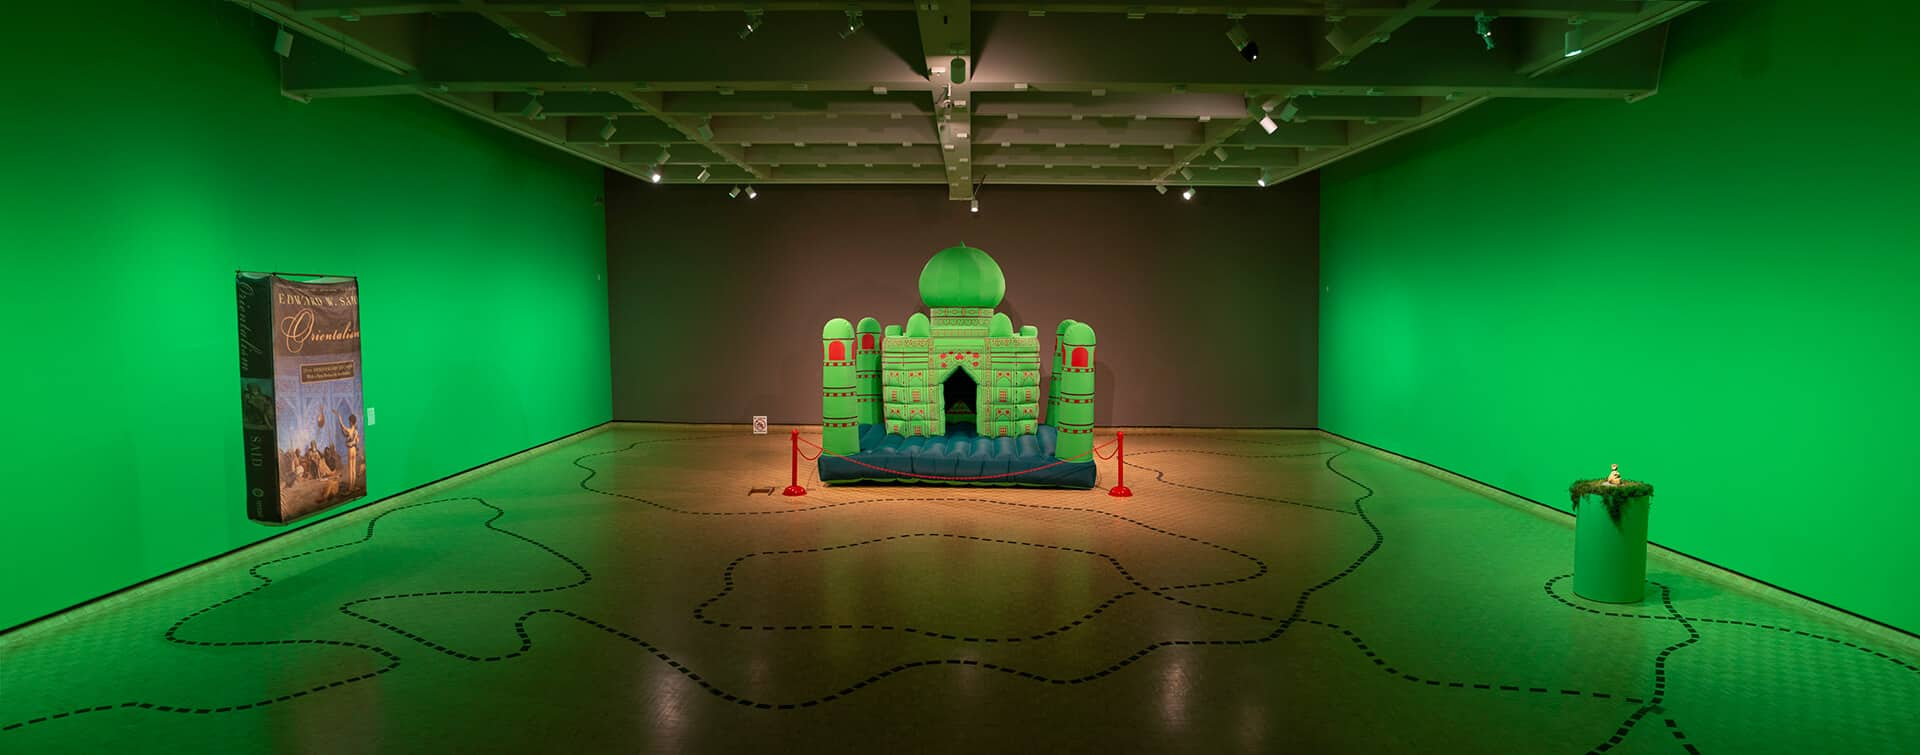 Composite from Ladder: Installation view, Divya Mehra: From India to Canada and Back to India (There is nothing I can possess which you cannot take away), 2020, MacKenzie Art Gallery. Photo by Sarah Fuller. Image courtesy the artist and Georgia Scherman Projects.